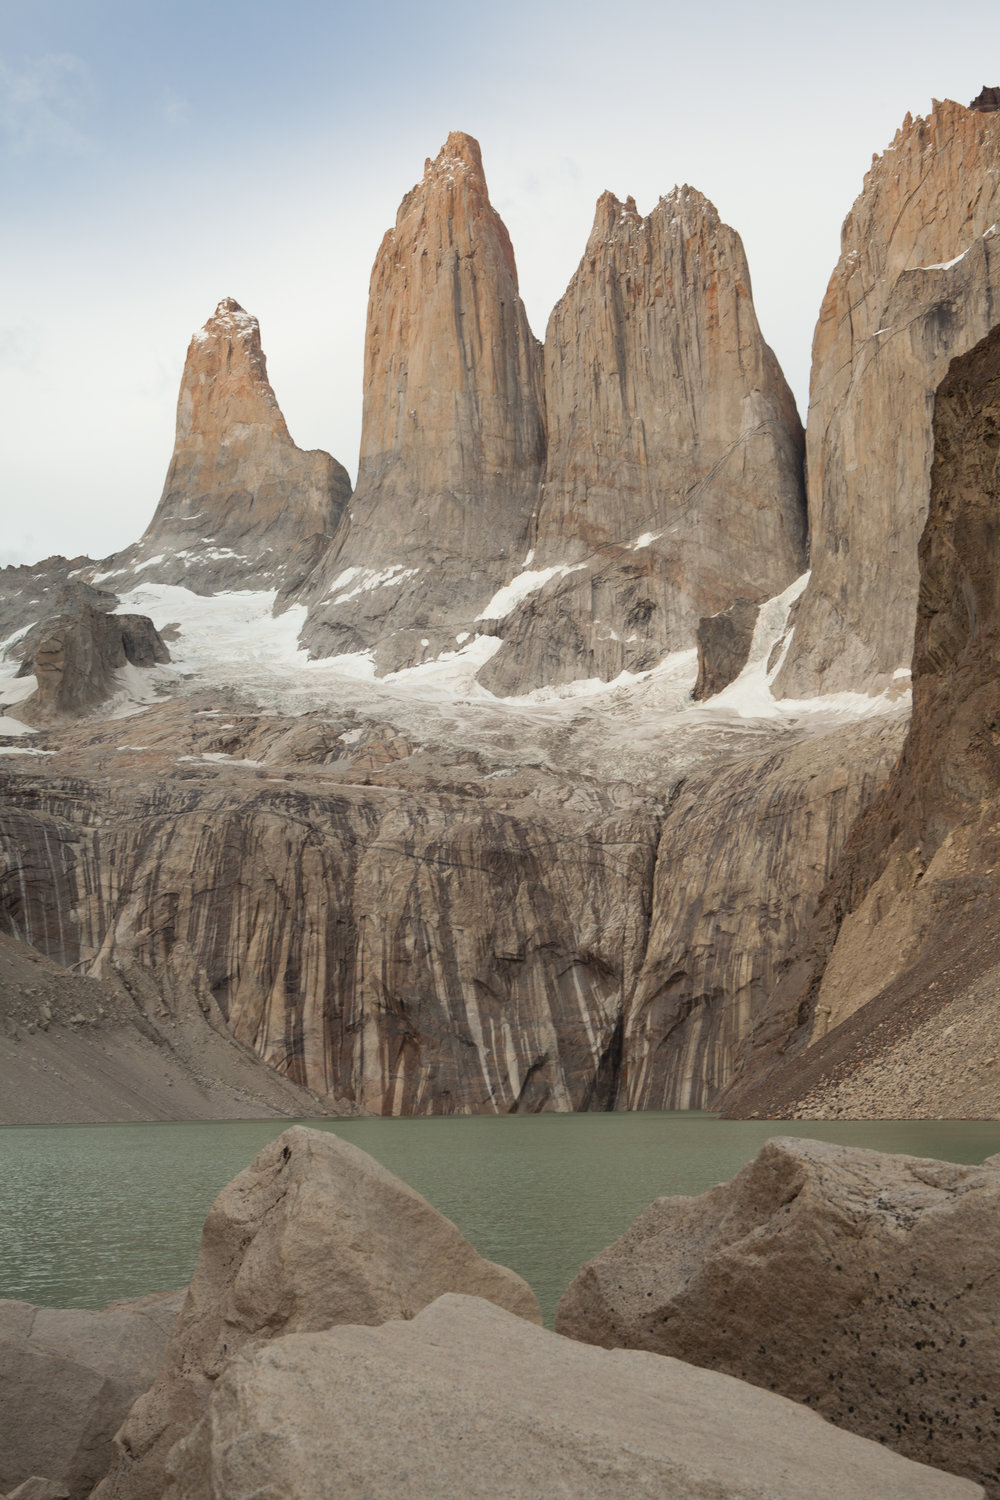 The spires of Torres del Paine National Park, Chile.